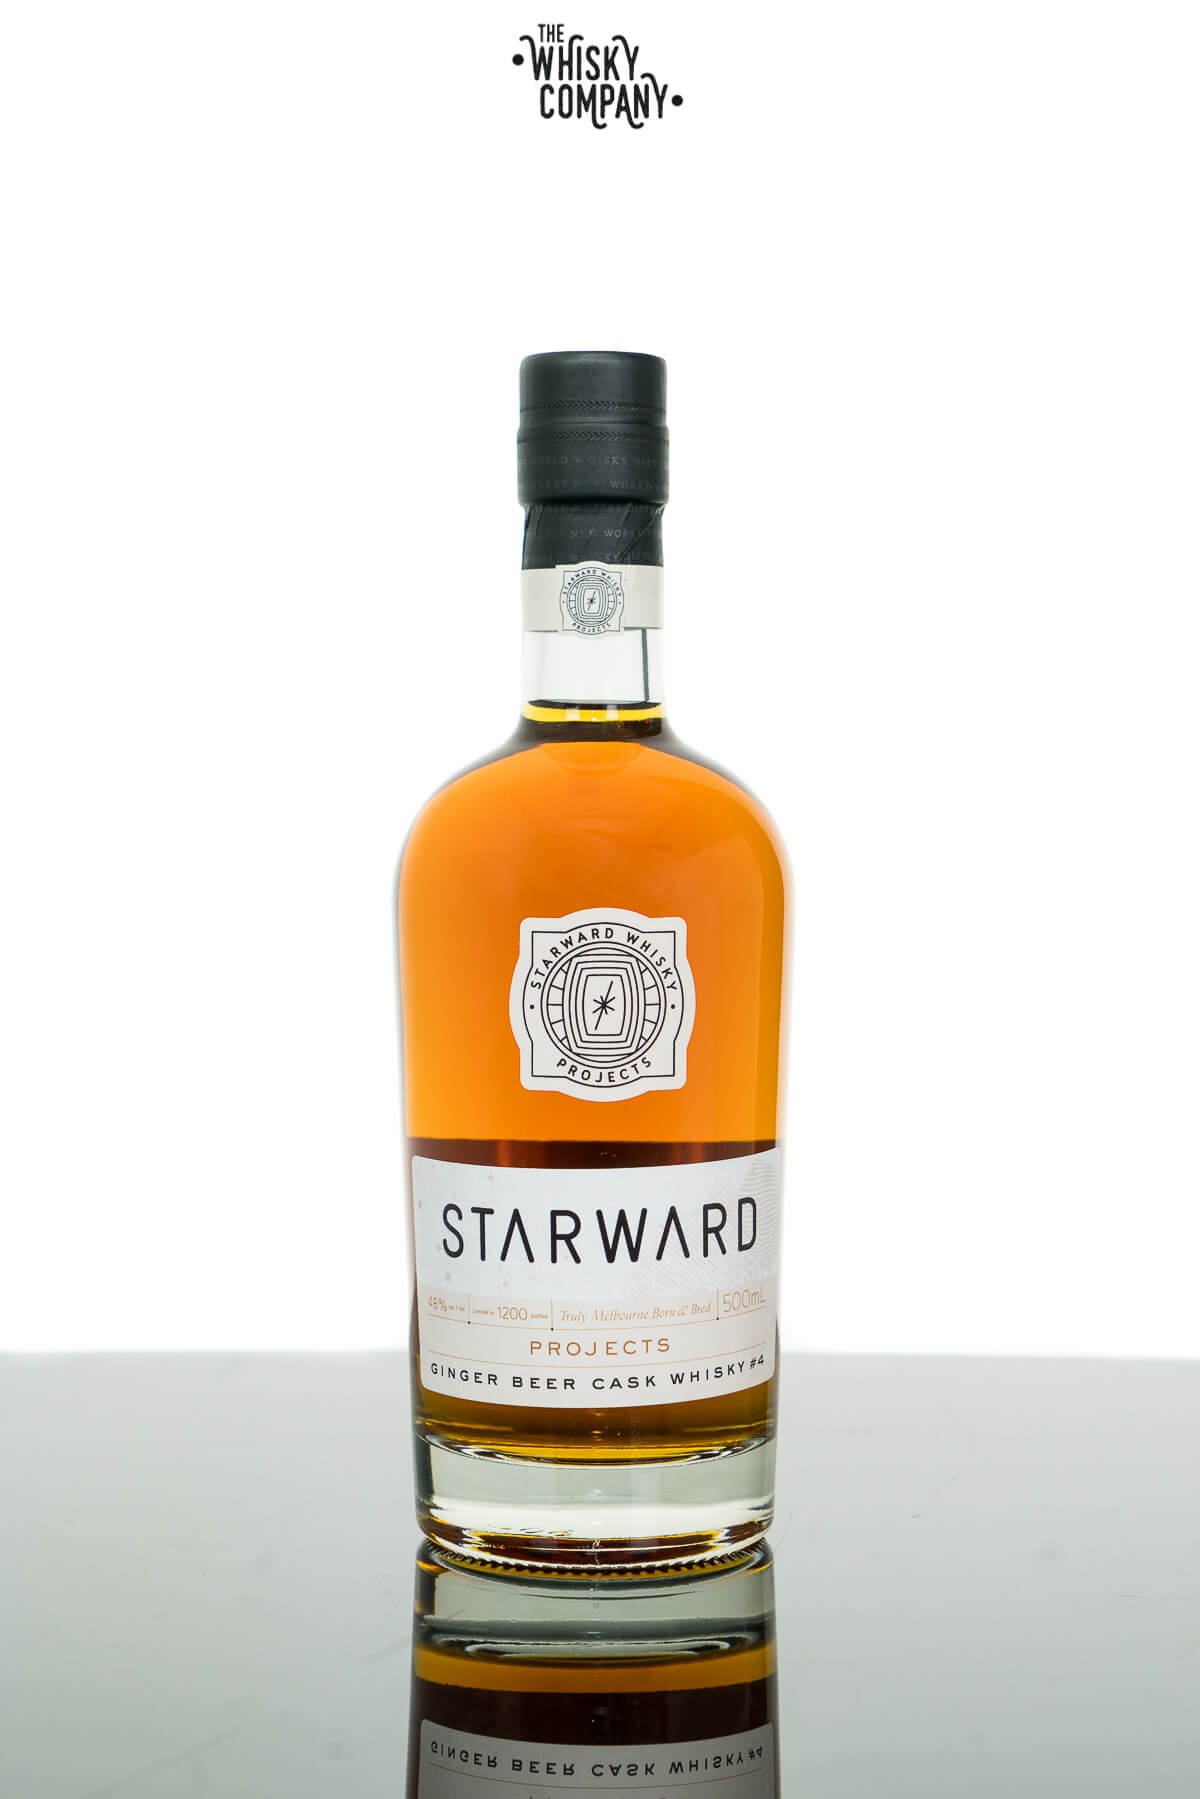 Starward Projects Ginger Beer Cask Batch 4 Australian Single Malt Whisky (500ml)